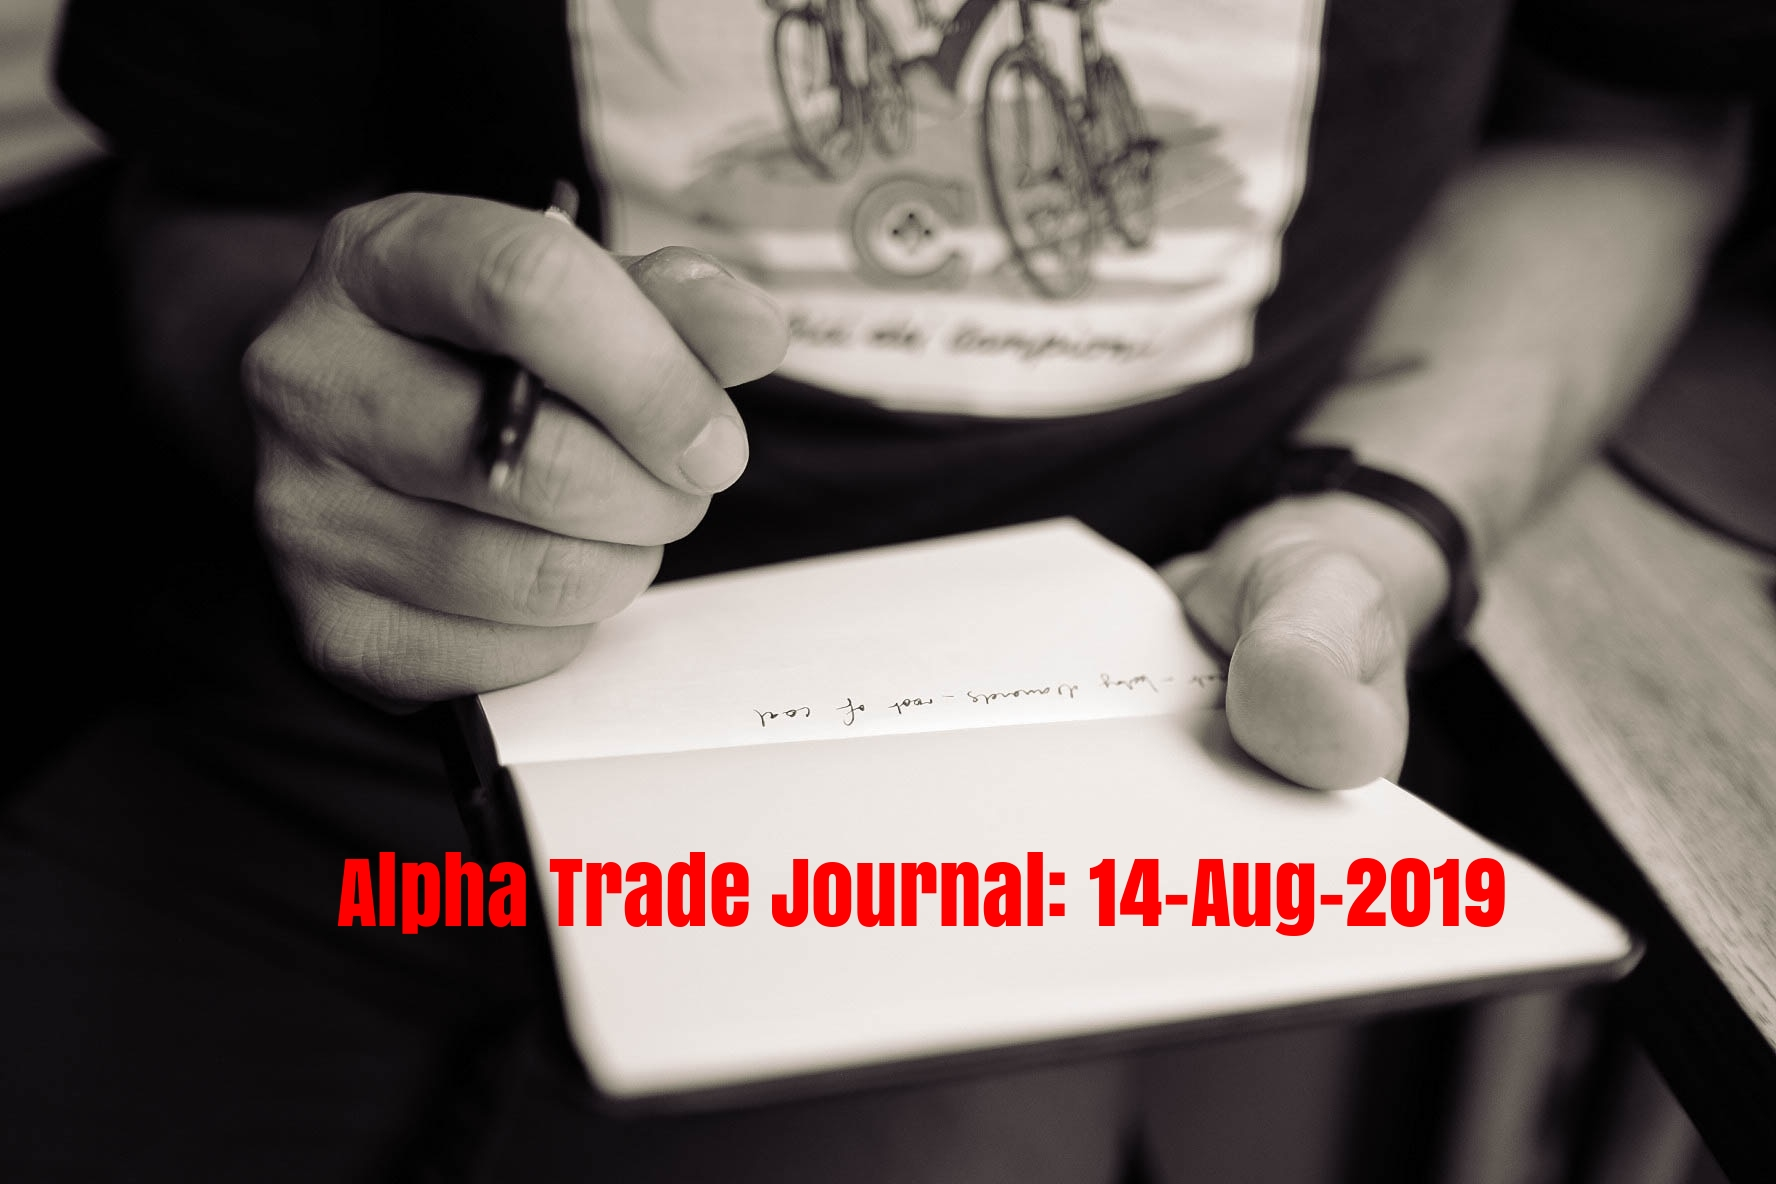 Alpha Trade Journal: 14-Aug-2019